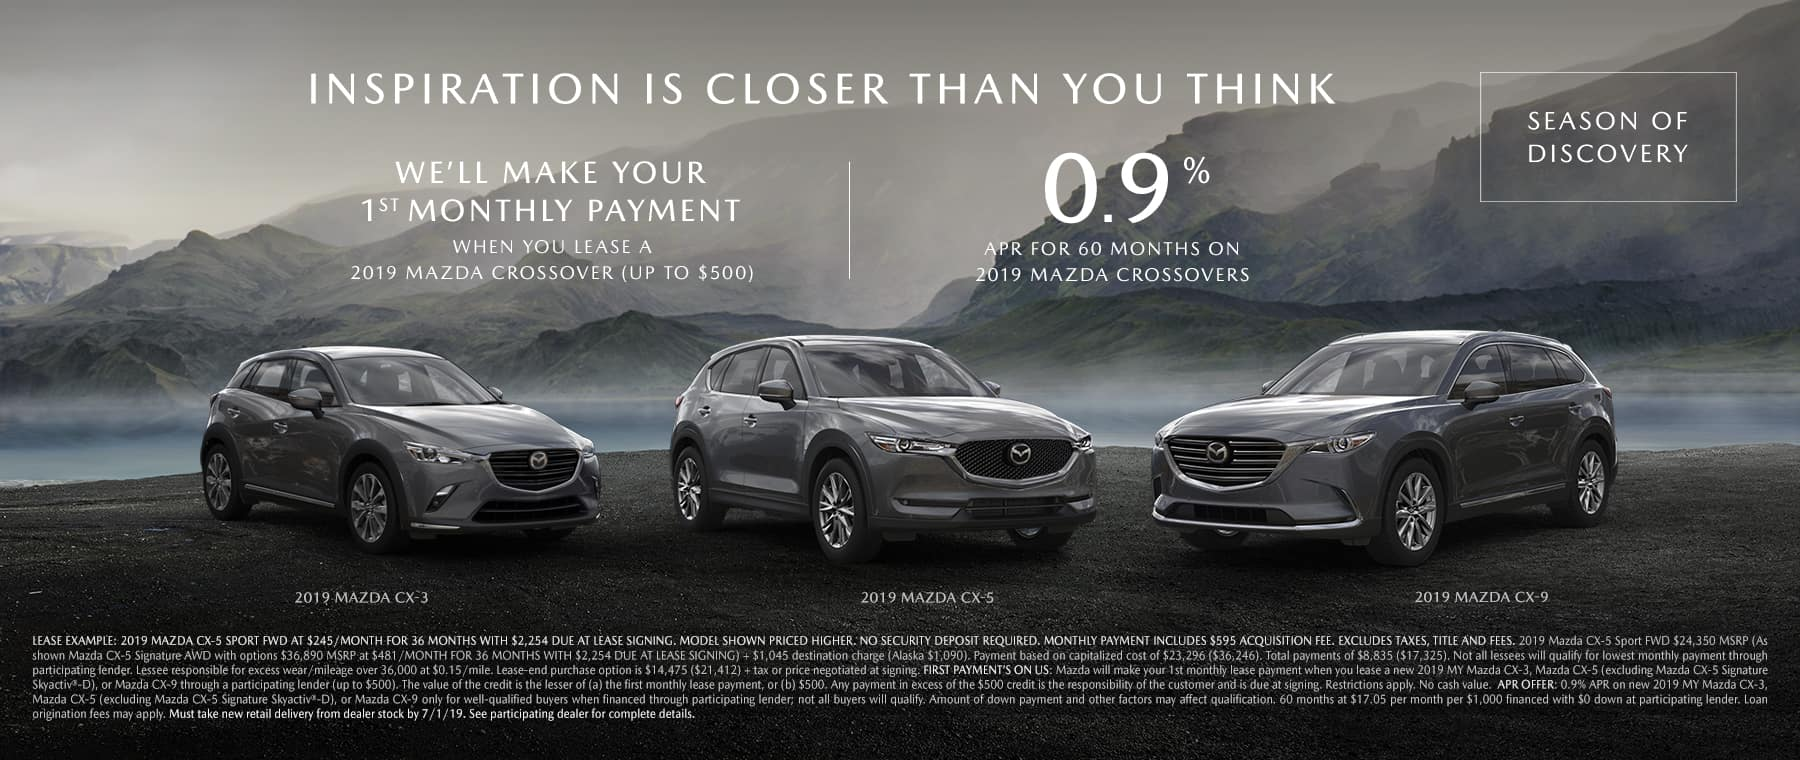 Save on Mazda SUVs During the Season of Discovery Sales Event at Jeff Haas Mazda